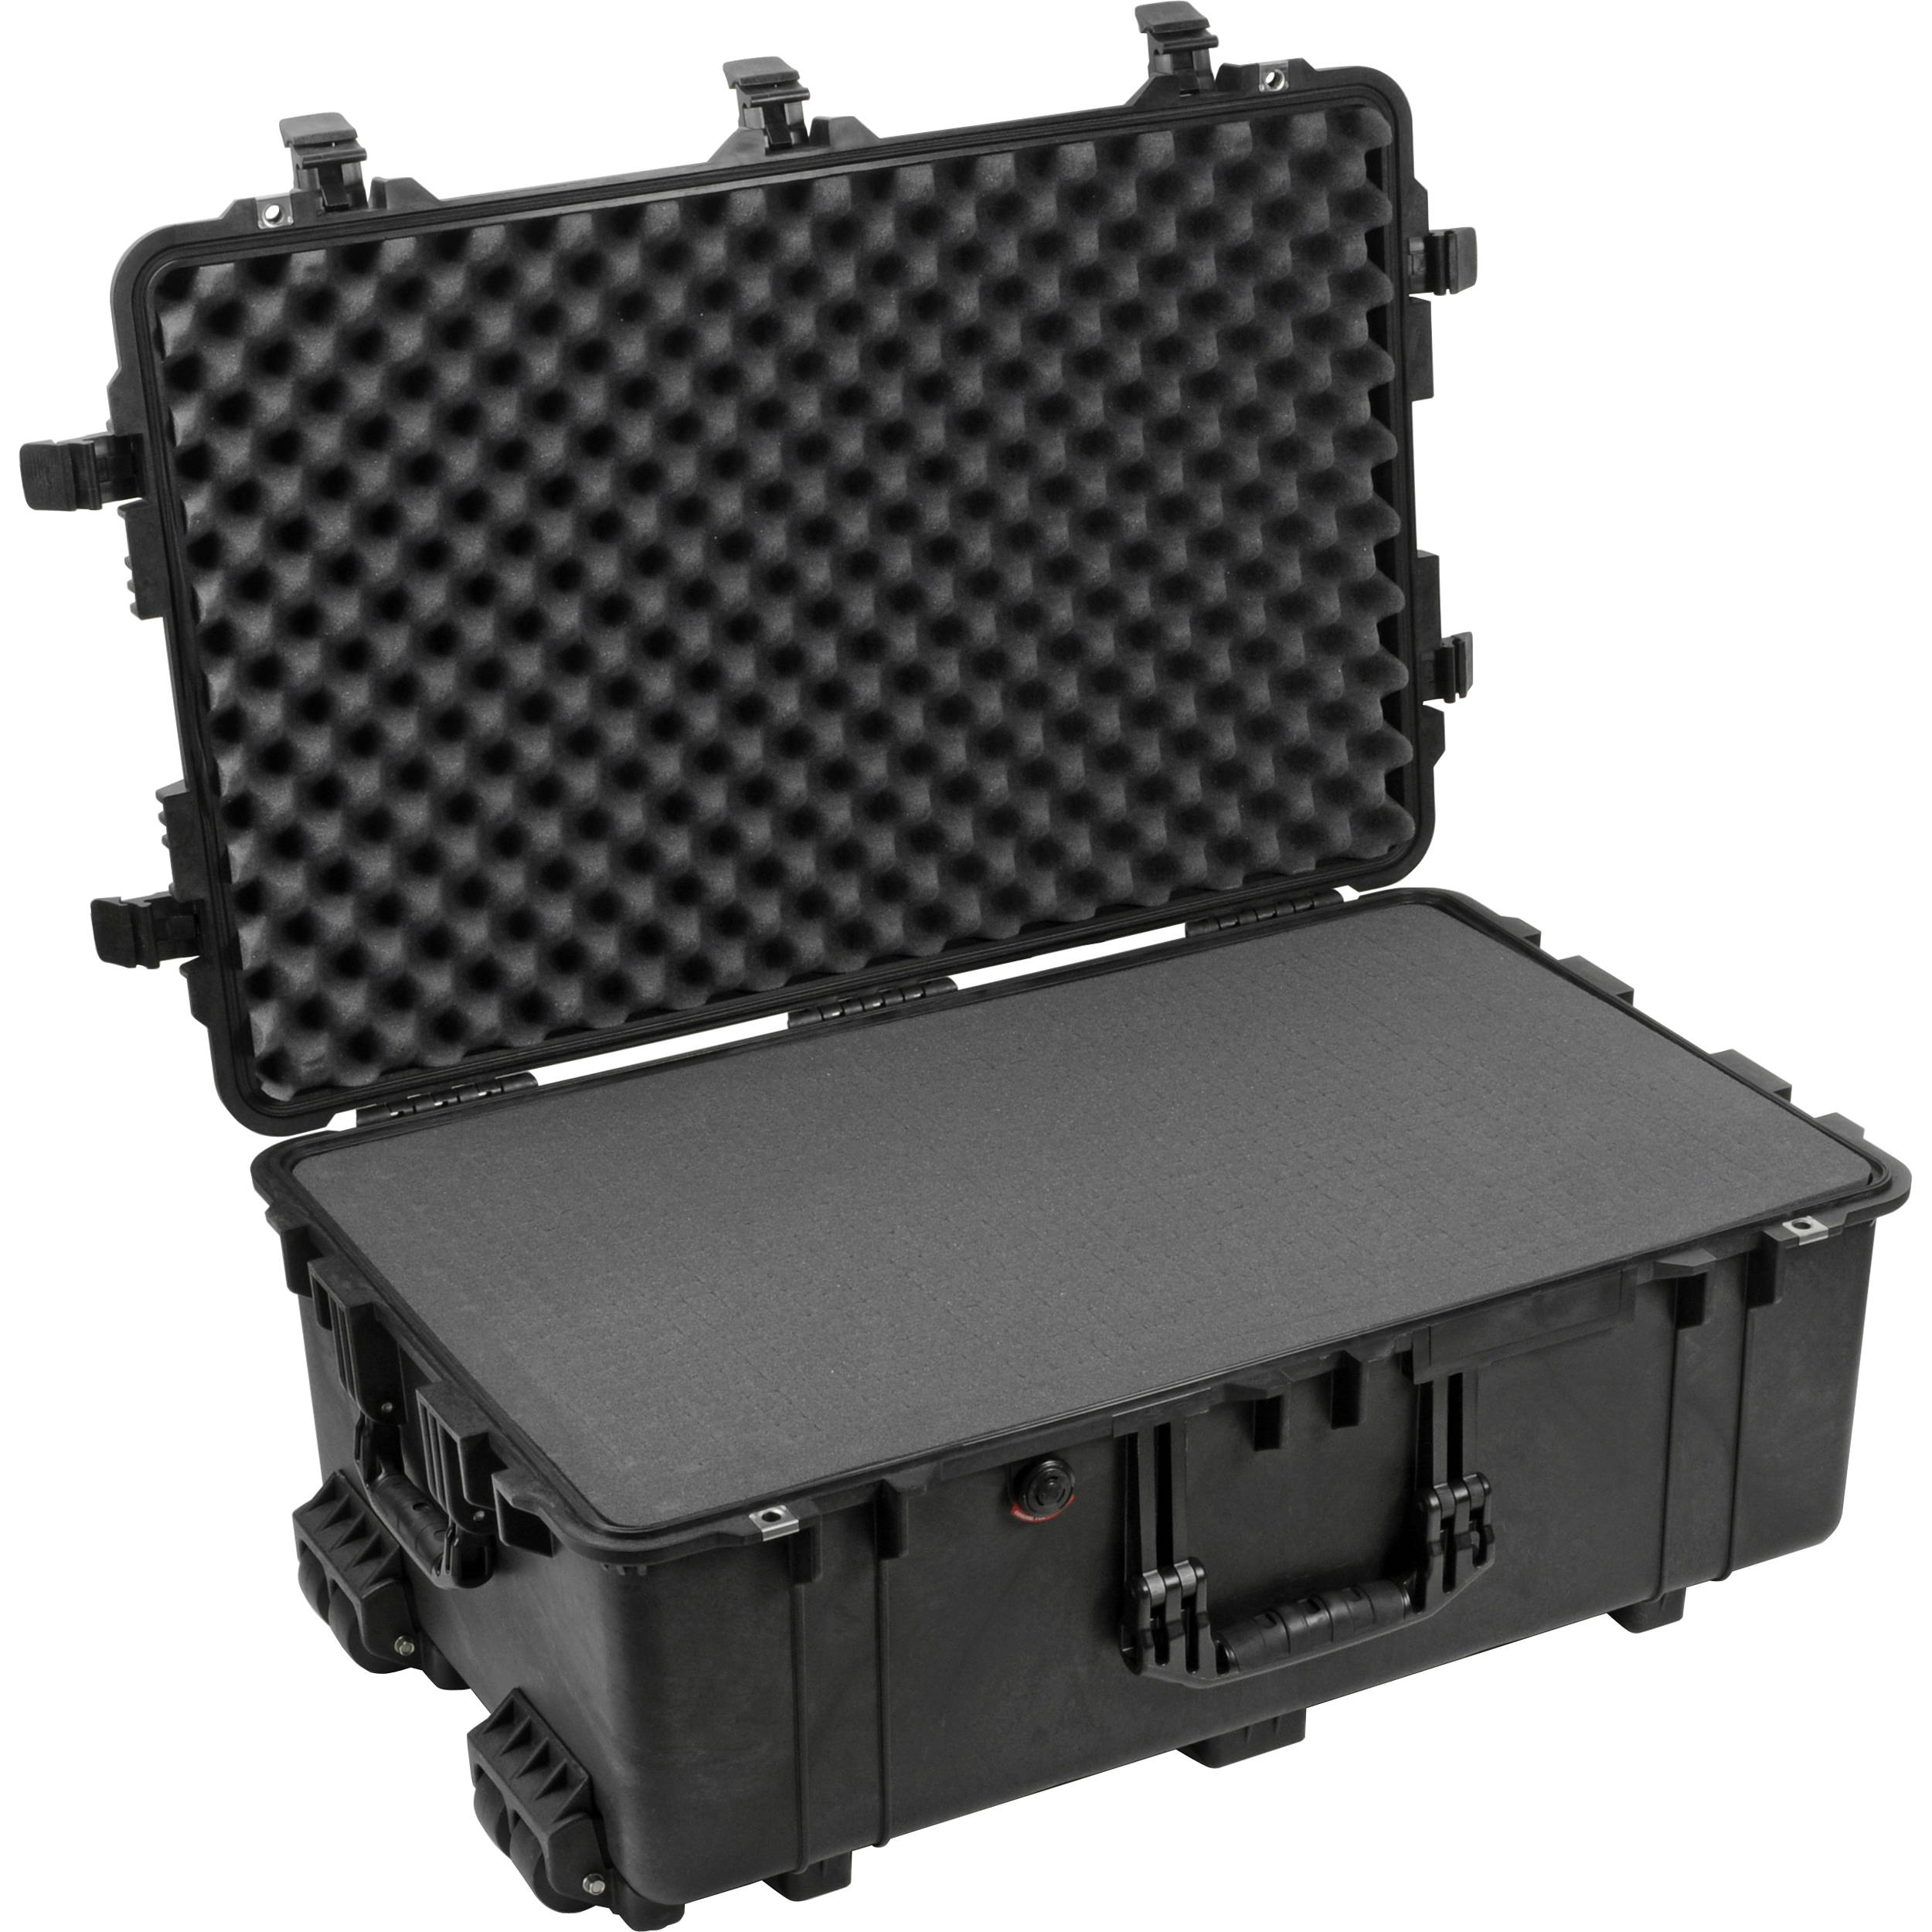 Fits Up to 1650 Cards H Hard Case